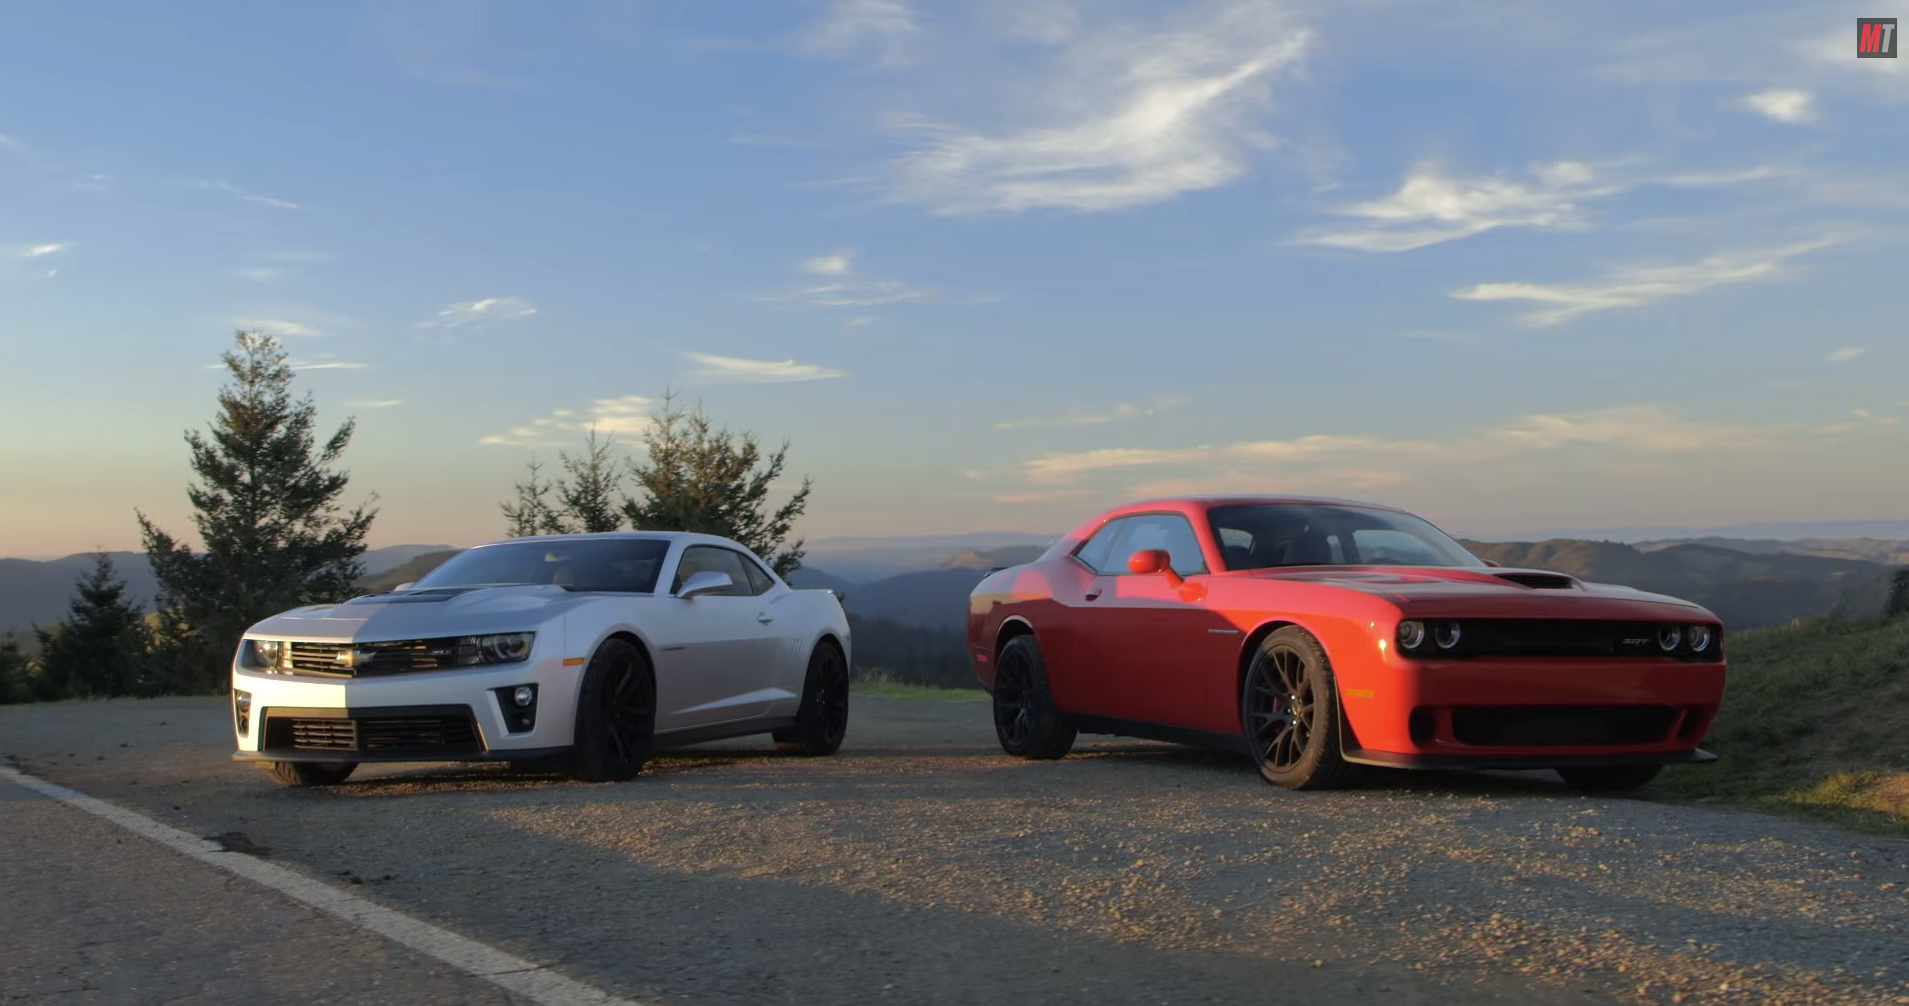 It S Chevy Camaro Zl1 Vs Dodge Challenger Hellcat In New